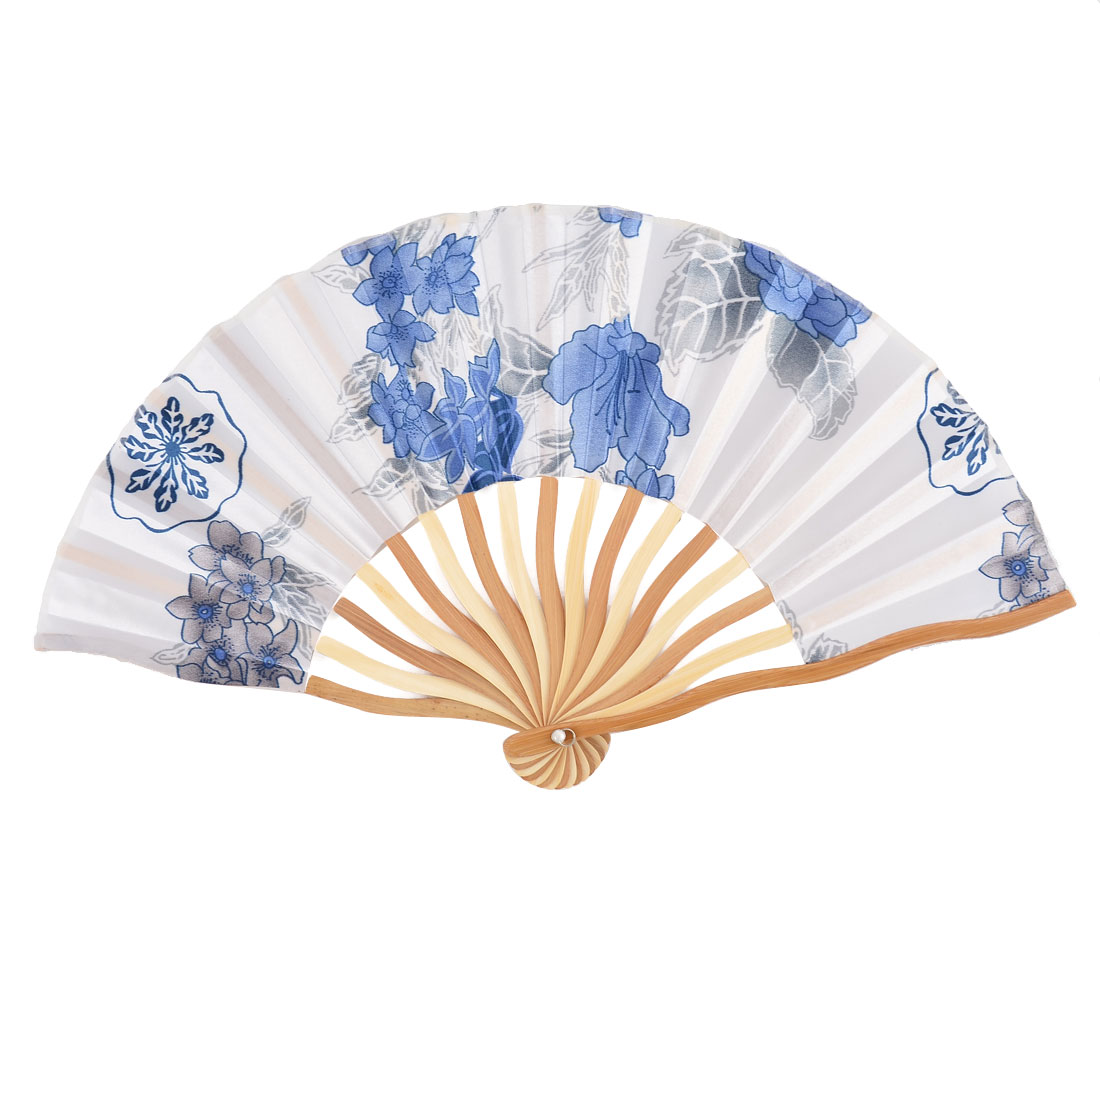 Bamboo Ribs Summer Cool Floral Pattern Folding Hand Fan Colorful w Bag